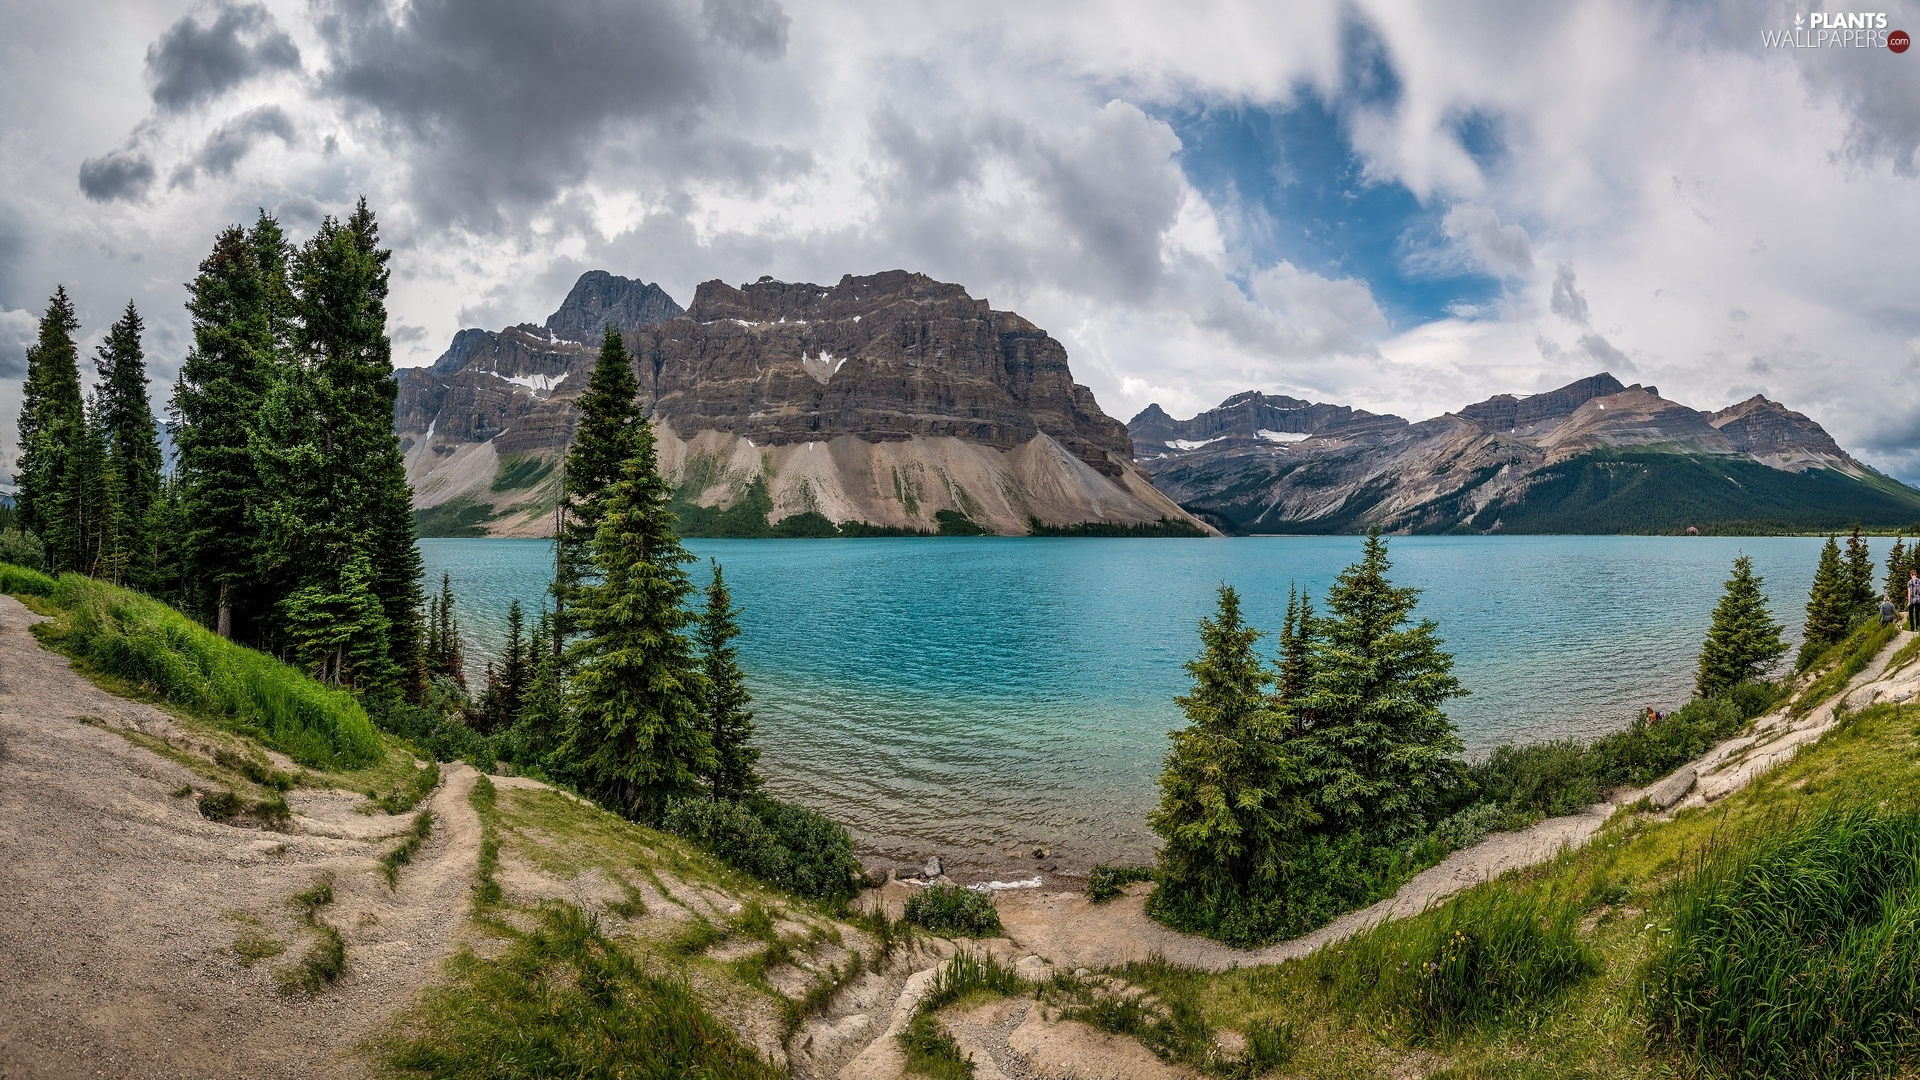 Banff National Park, Bow Lake, clouds, Mountains, viewes, Province of Alberta, Canada, trees